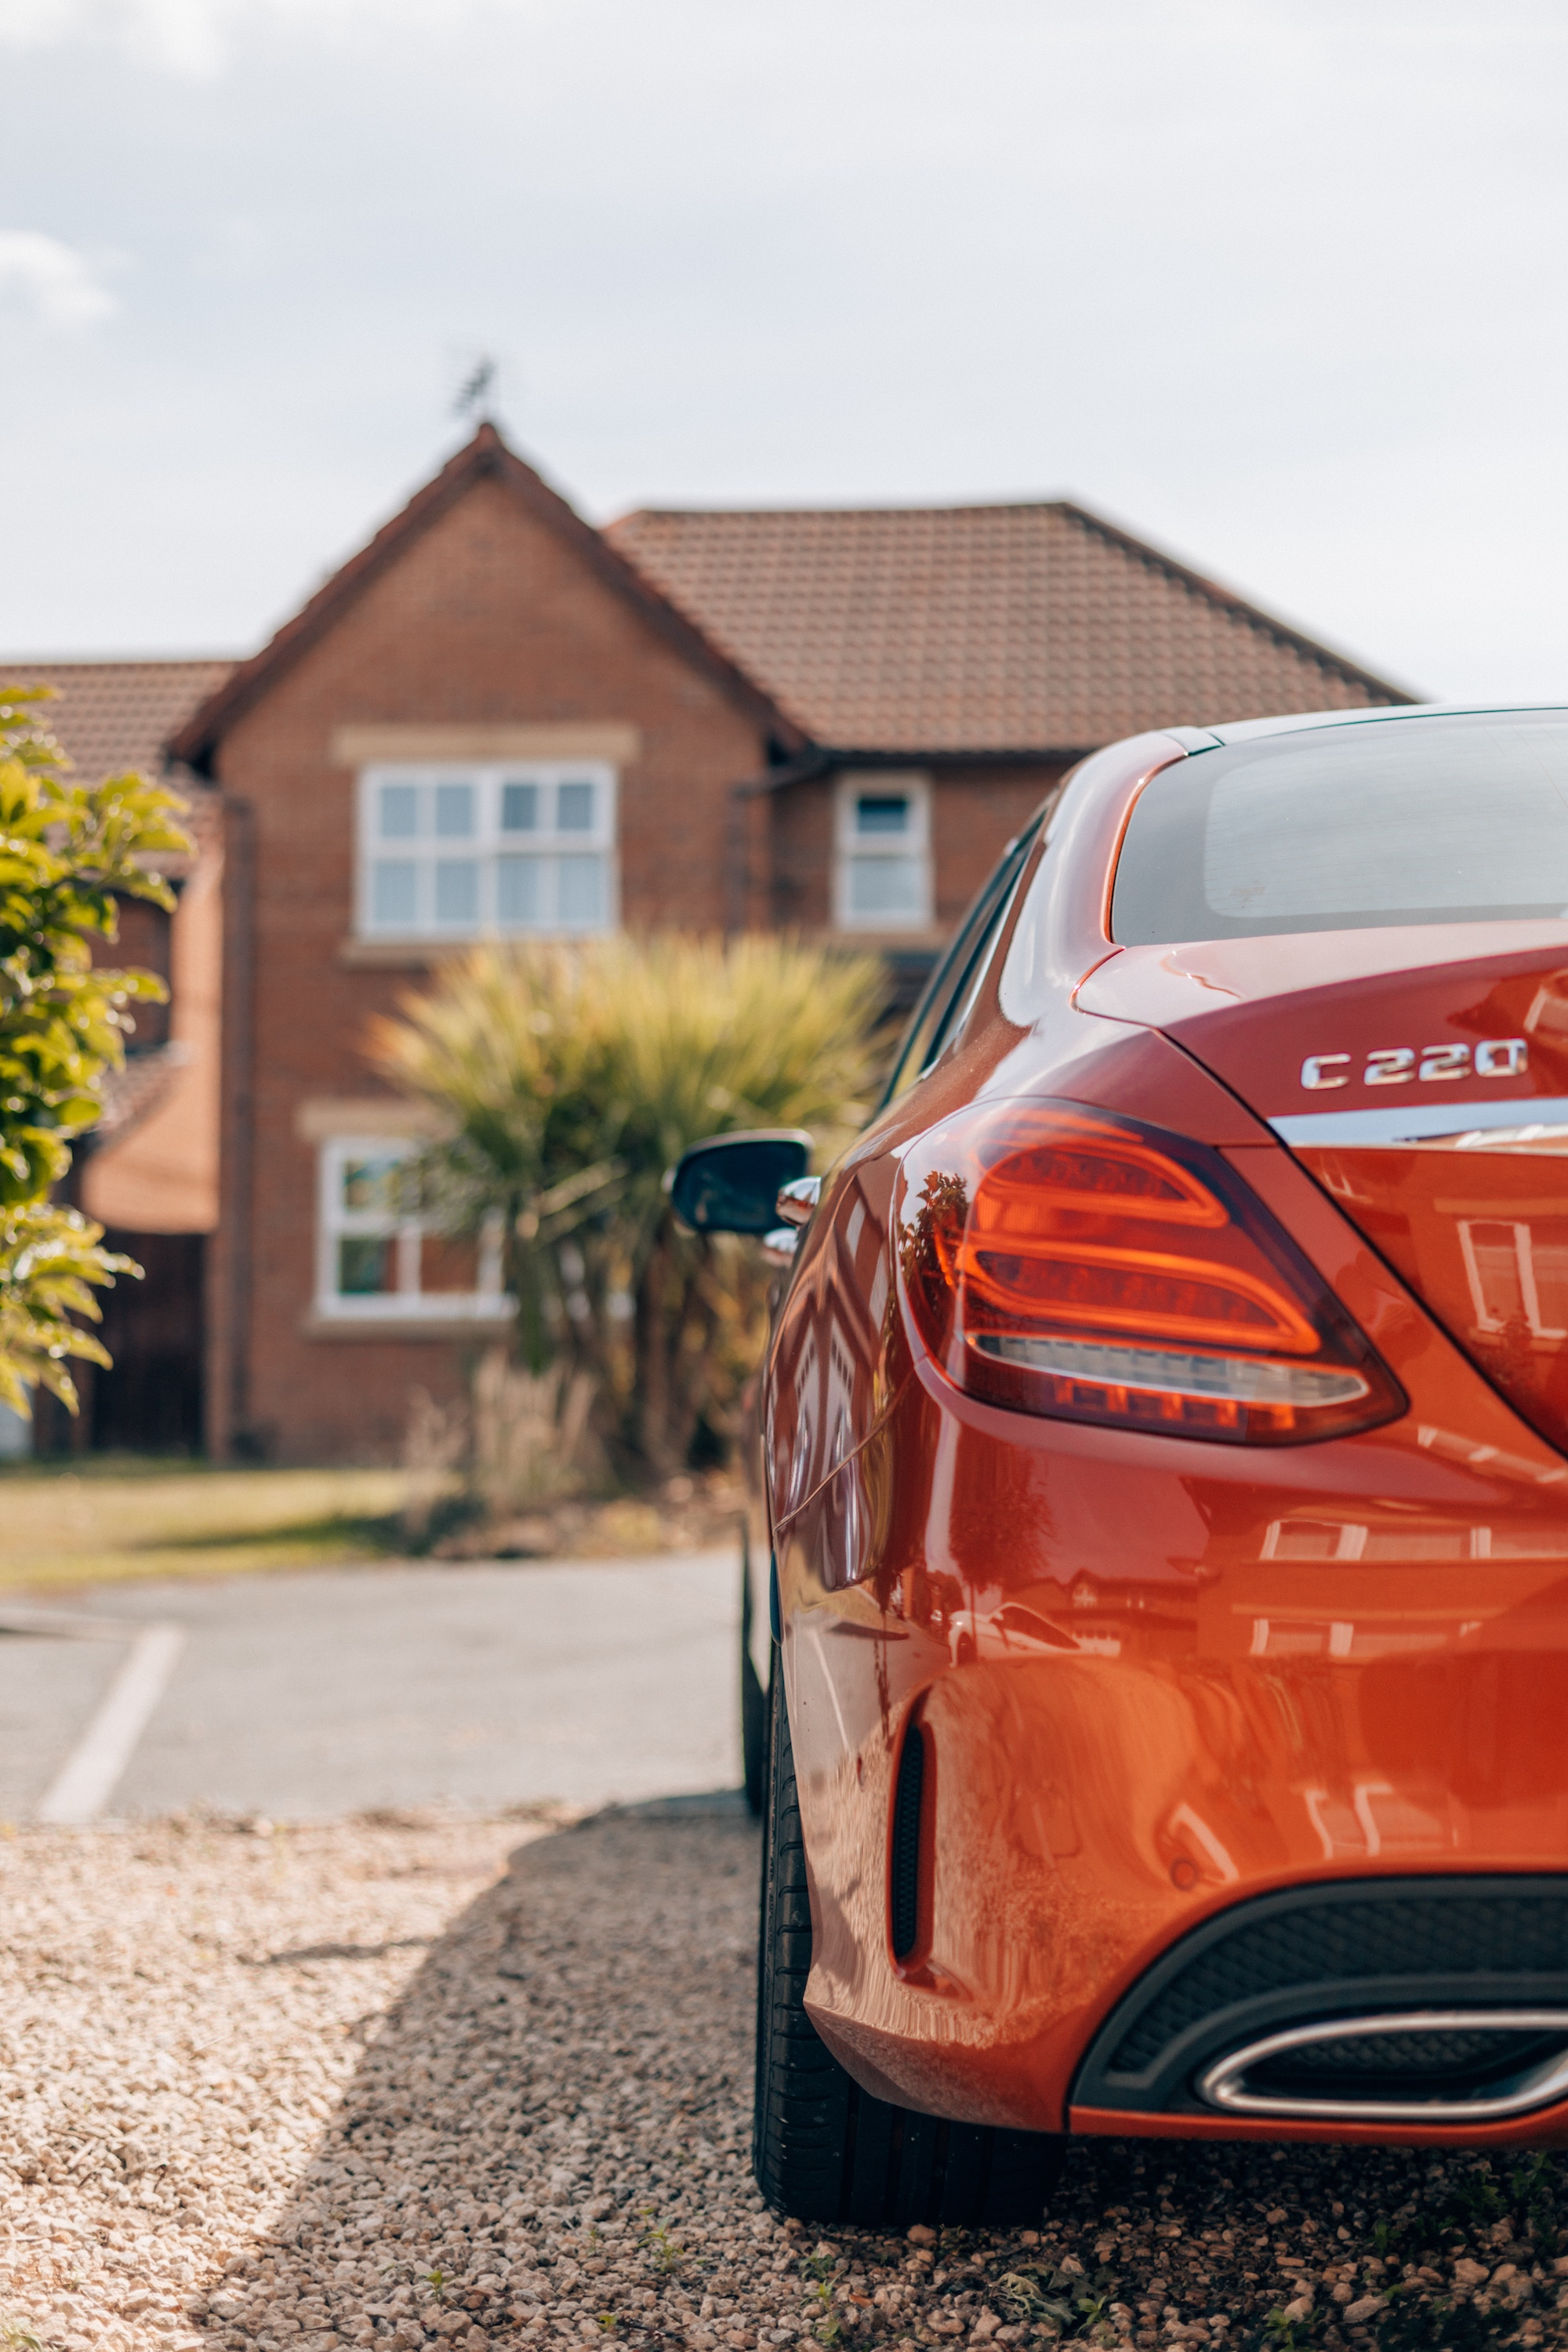 Another way to earn income from your property is to rent out your driveway